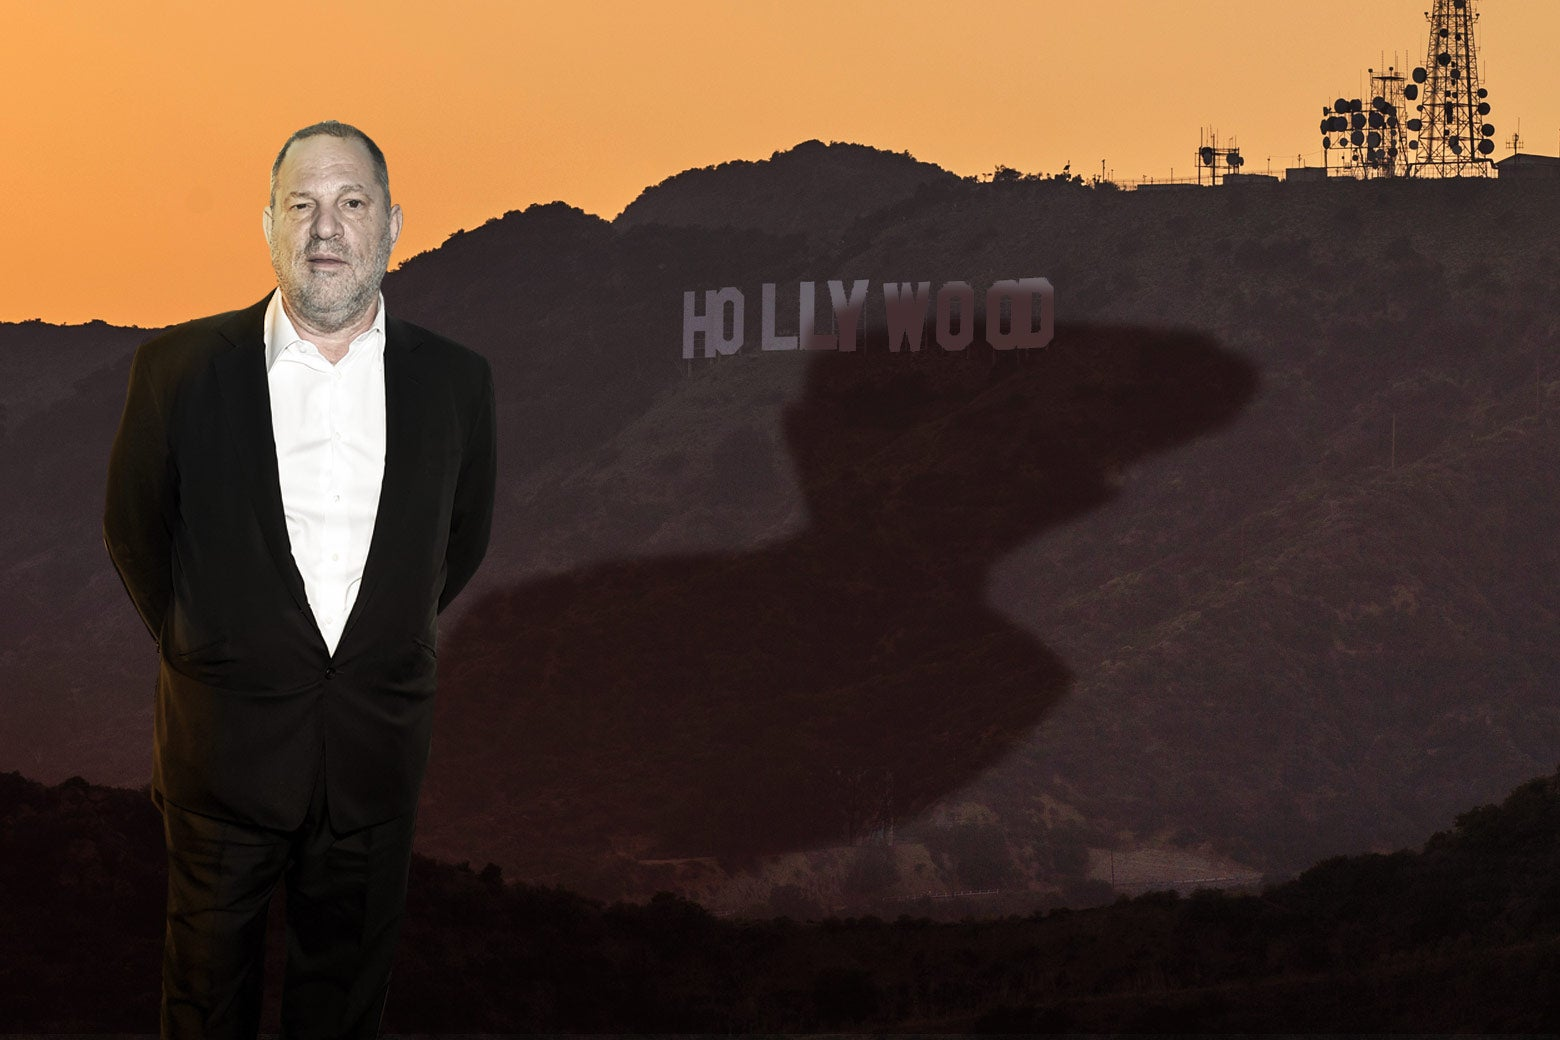 Photo illustration by Slate. Photos by Thinkstock and Dimitrios Kambouris/Getty Images for the Hollywood Reporter.